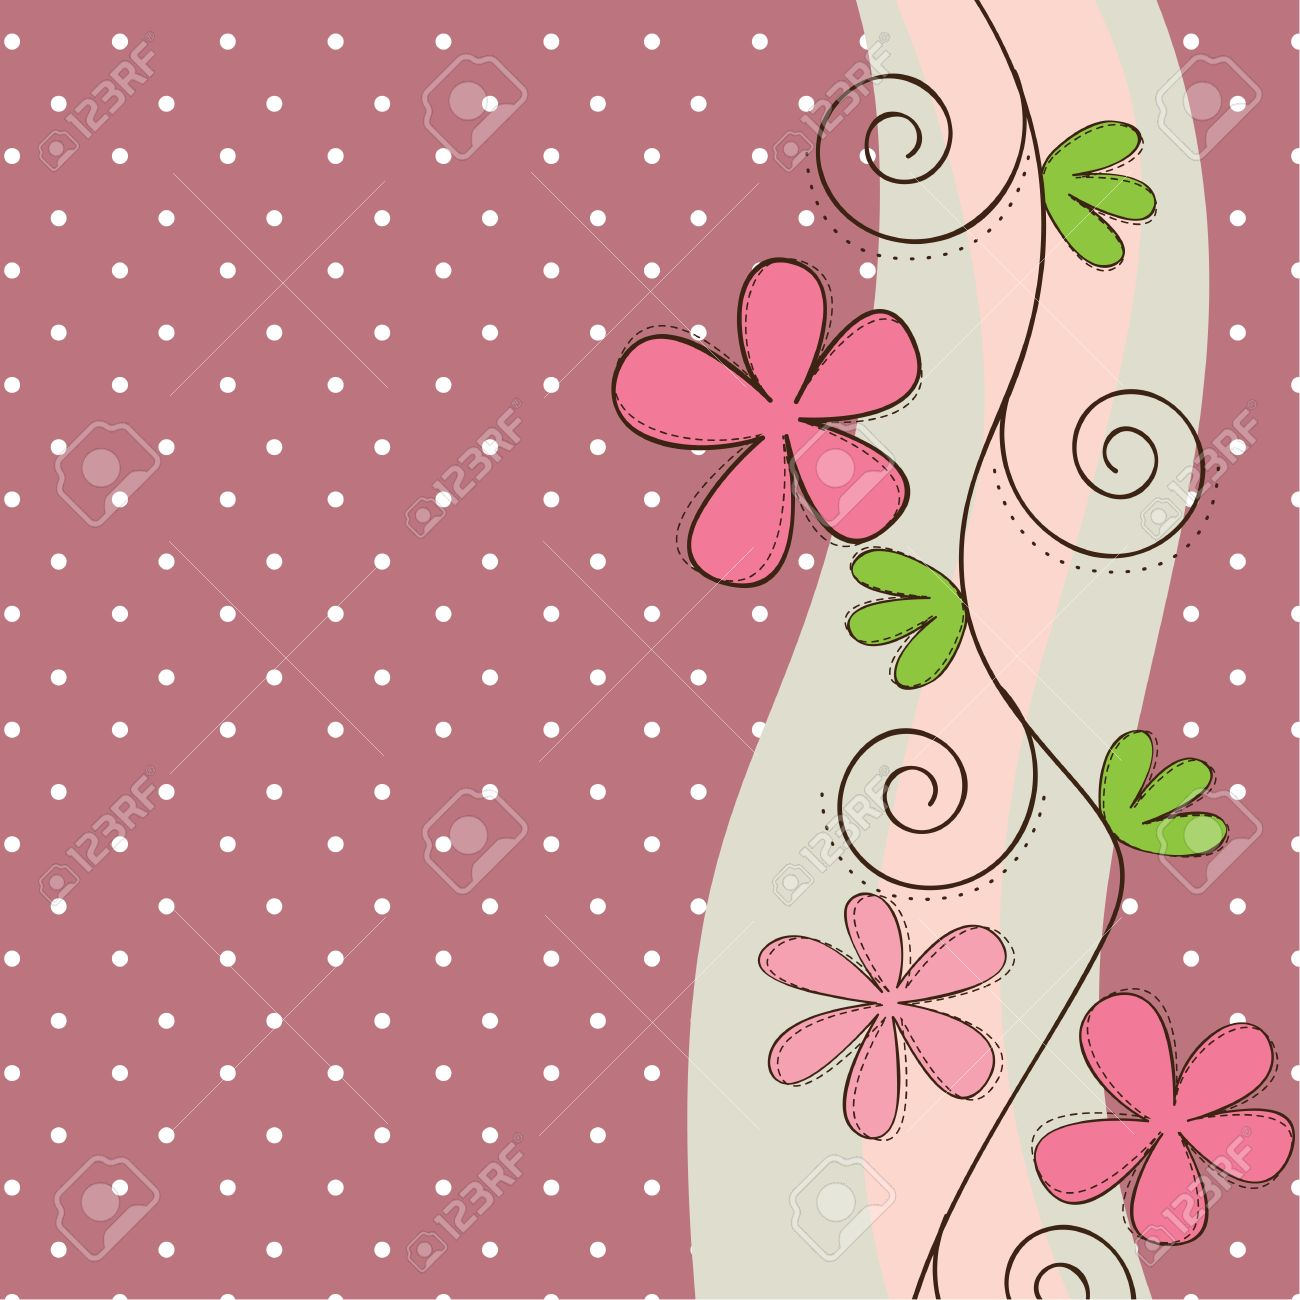 Pink and green flowers background, space to insert text or design Stock Vector - 14375051